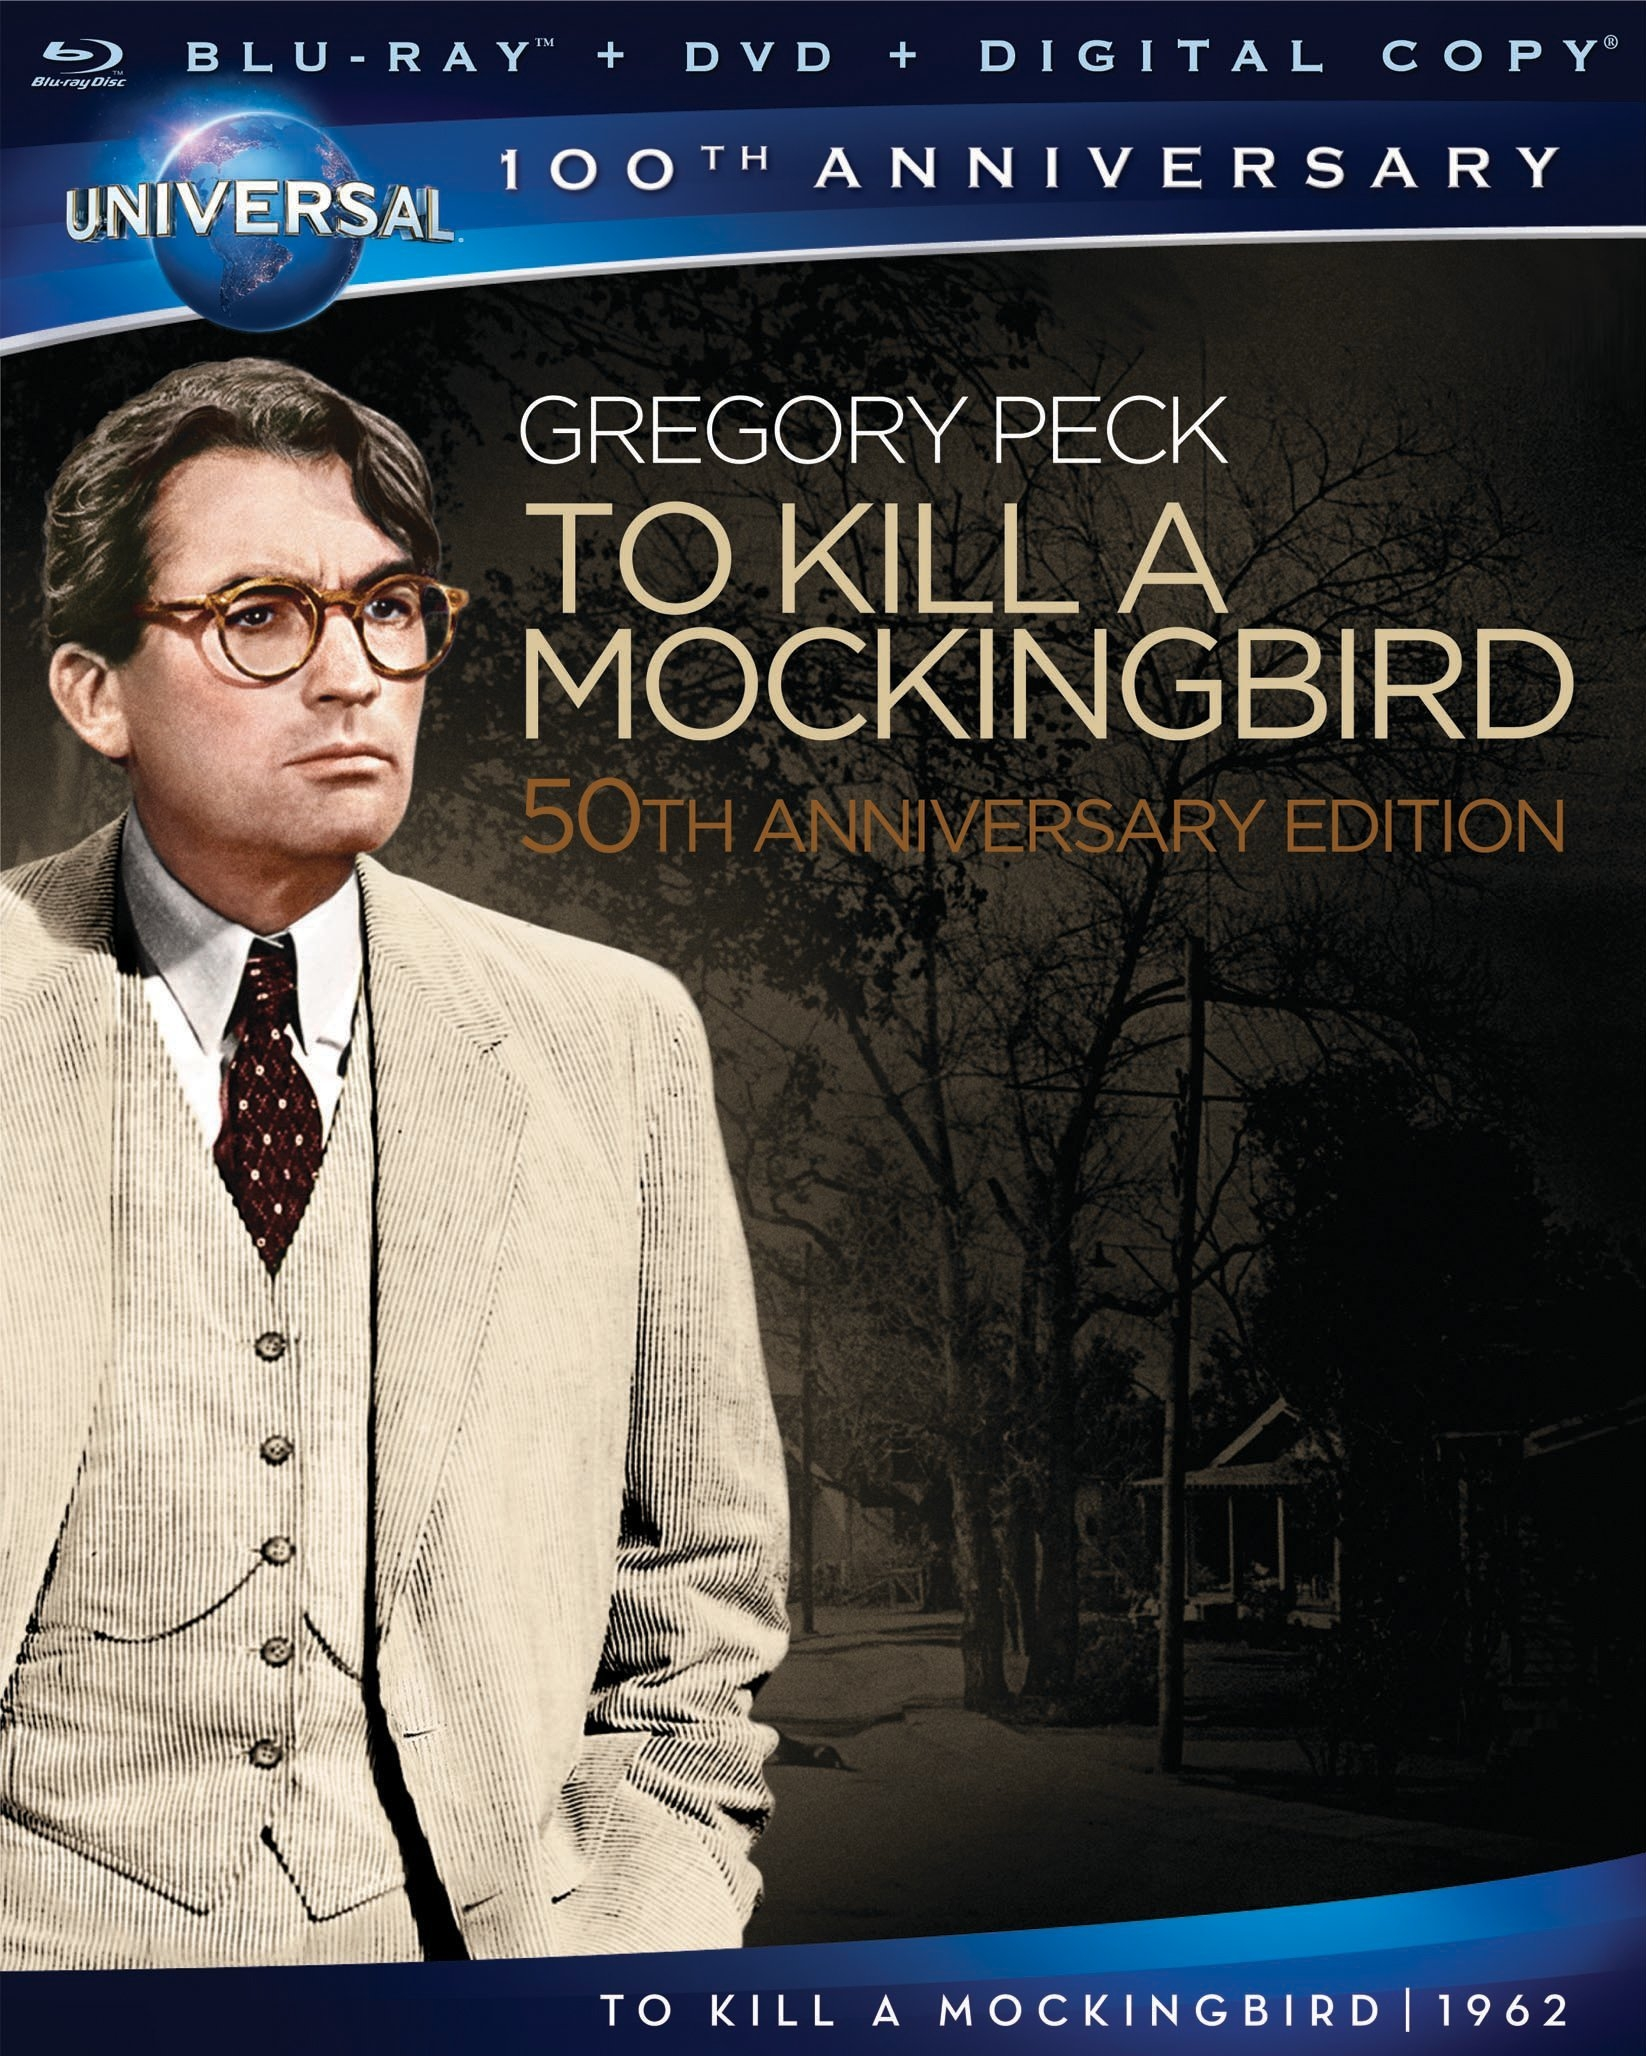 a review of harper lees emotional novel to kill a mockingbird Her novel to kill a mockingbird harper lee's second novel the bombshell emerged this weekend in an embargo-breaking review of go set a watchman in the.